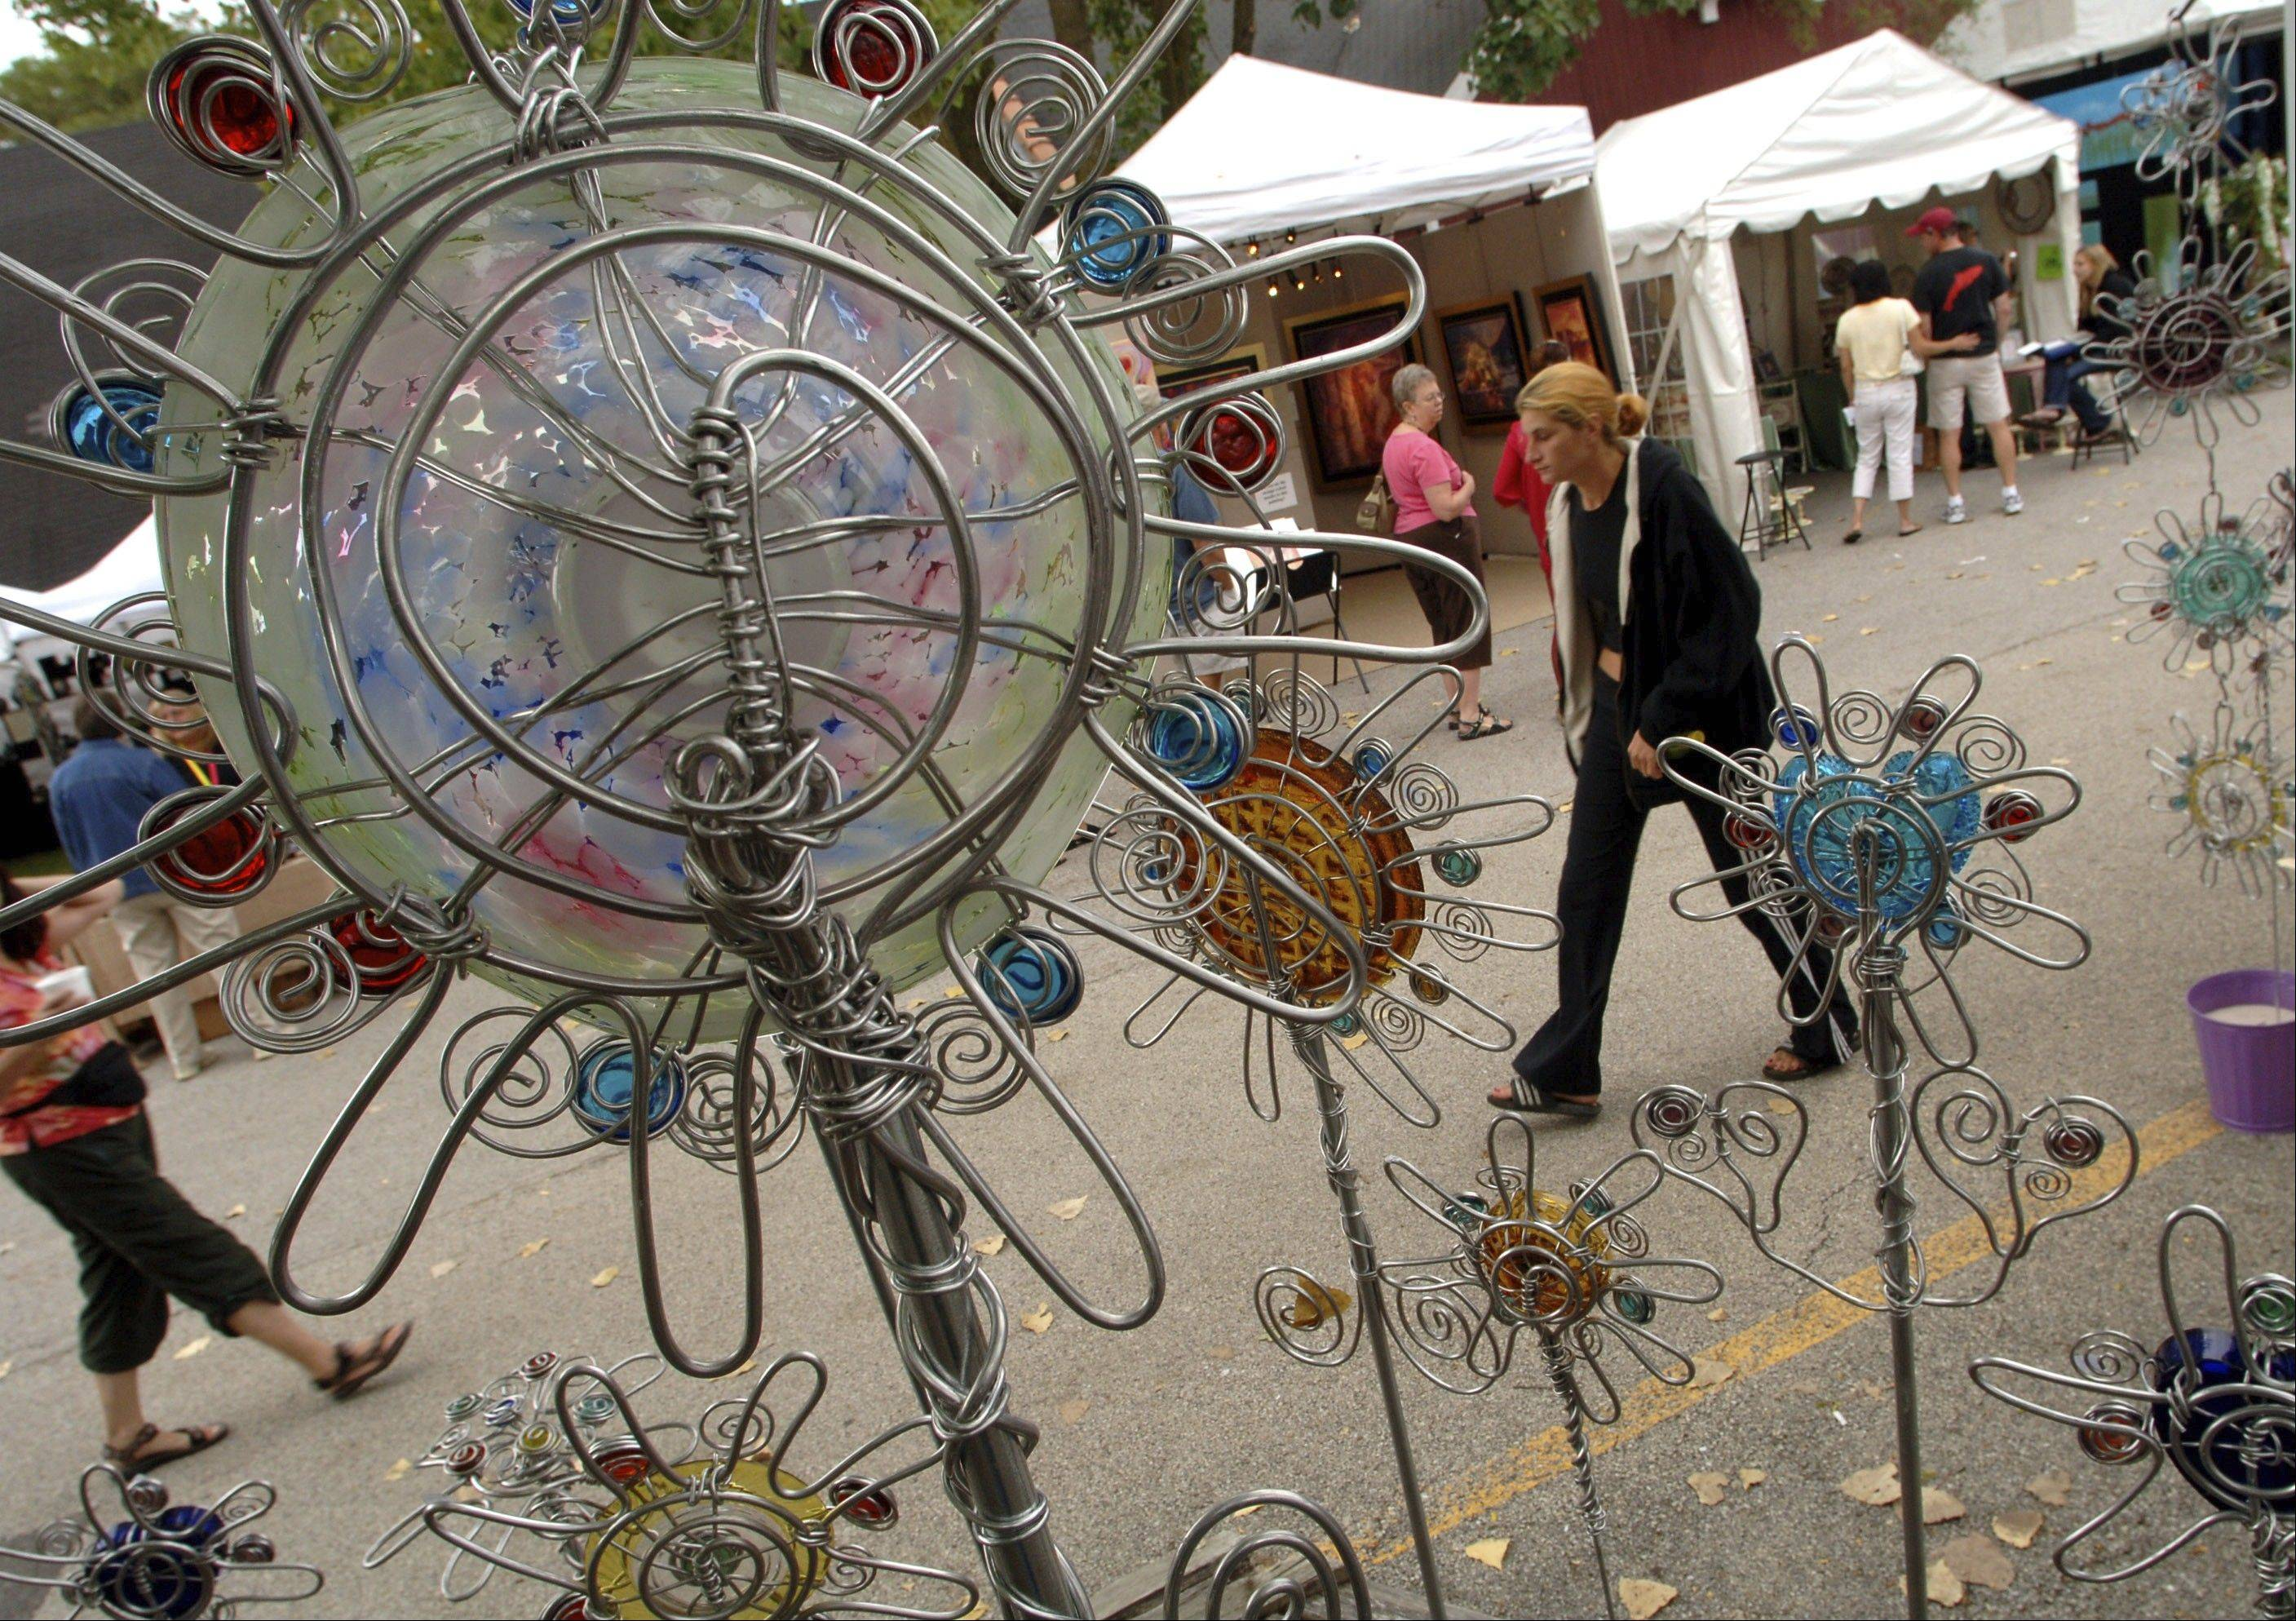 A selection of aluminum wire and glass bead art by Florida artists is displayed at the 19th annual Long Grove Art Fest.